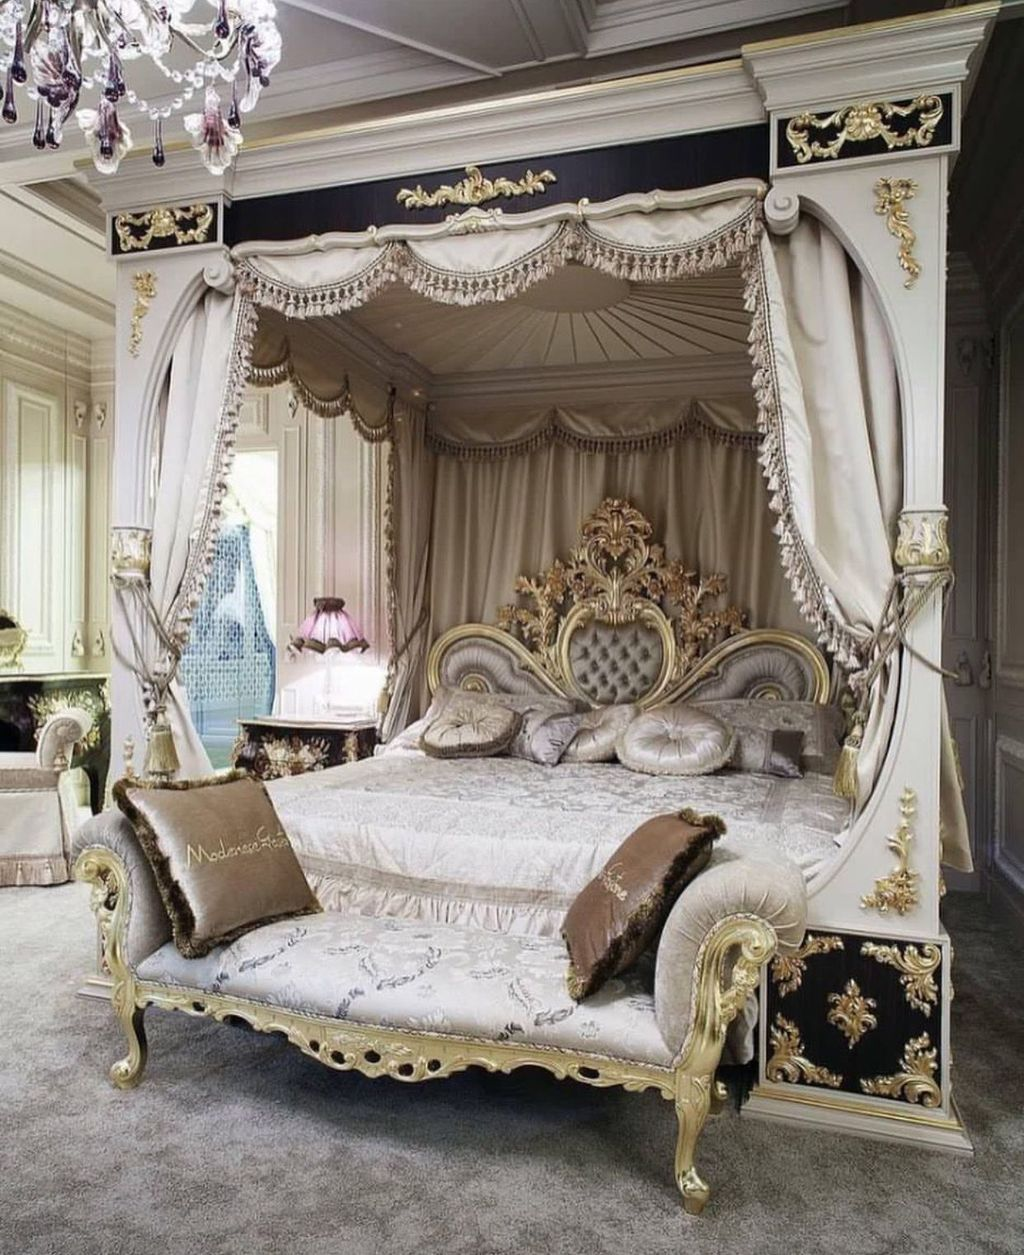 30 Modern Shabby Chic Bed Canopy Designs Ideas Trendhmdcr In 2020 Luxurious Bedrooms Luxury Bedroom Design Chic Living Room